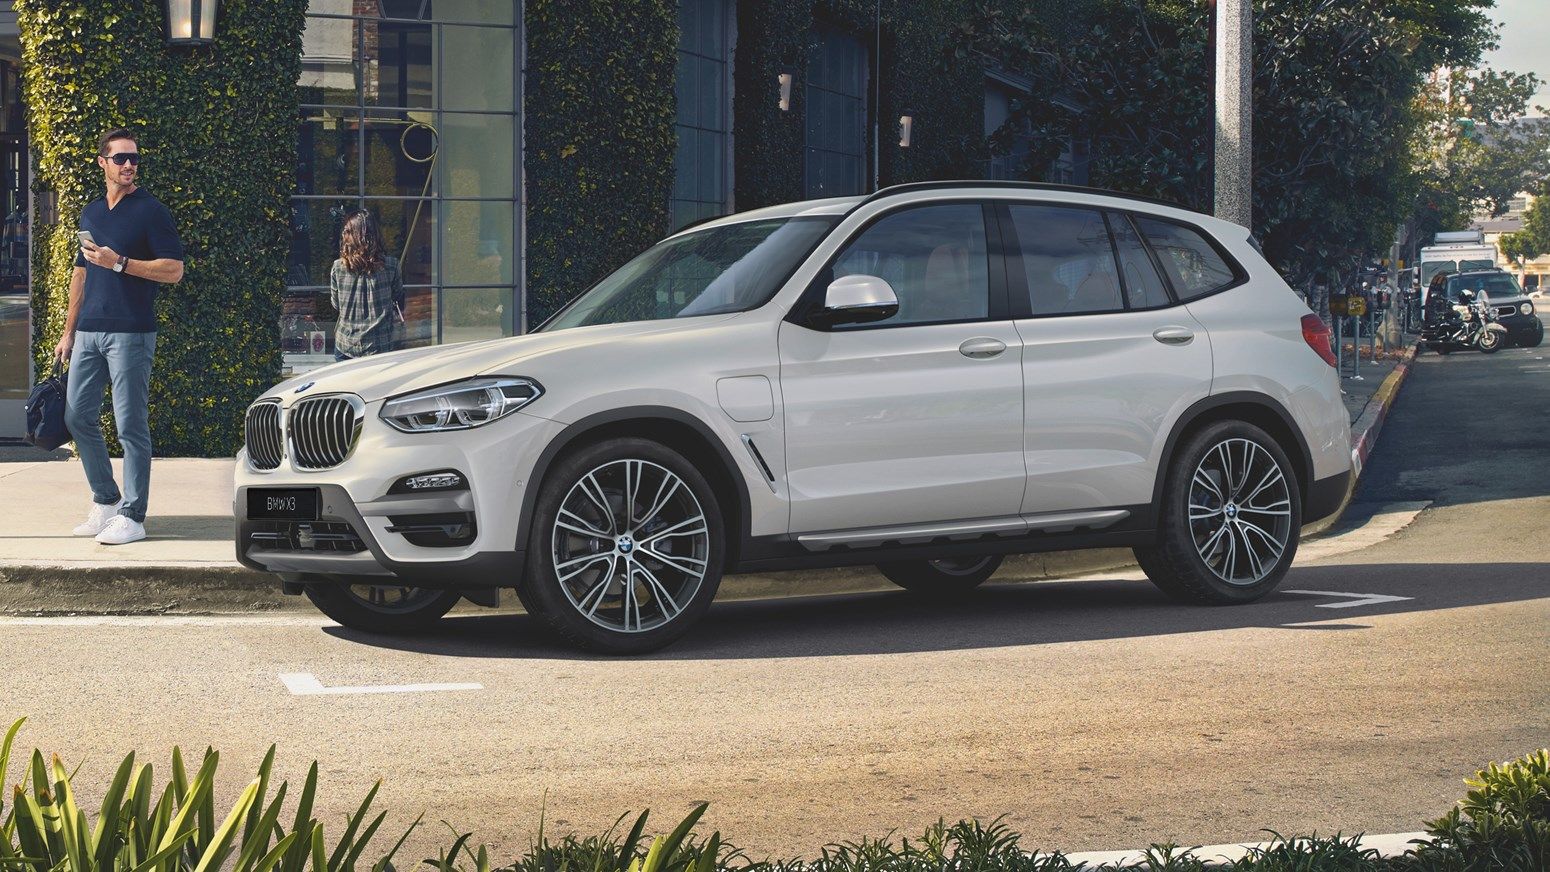 BMW X3 Xdrive30e HERO 3100X1330